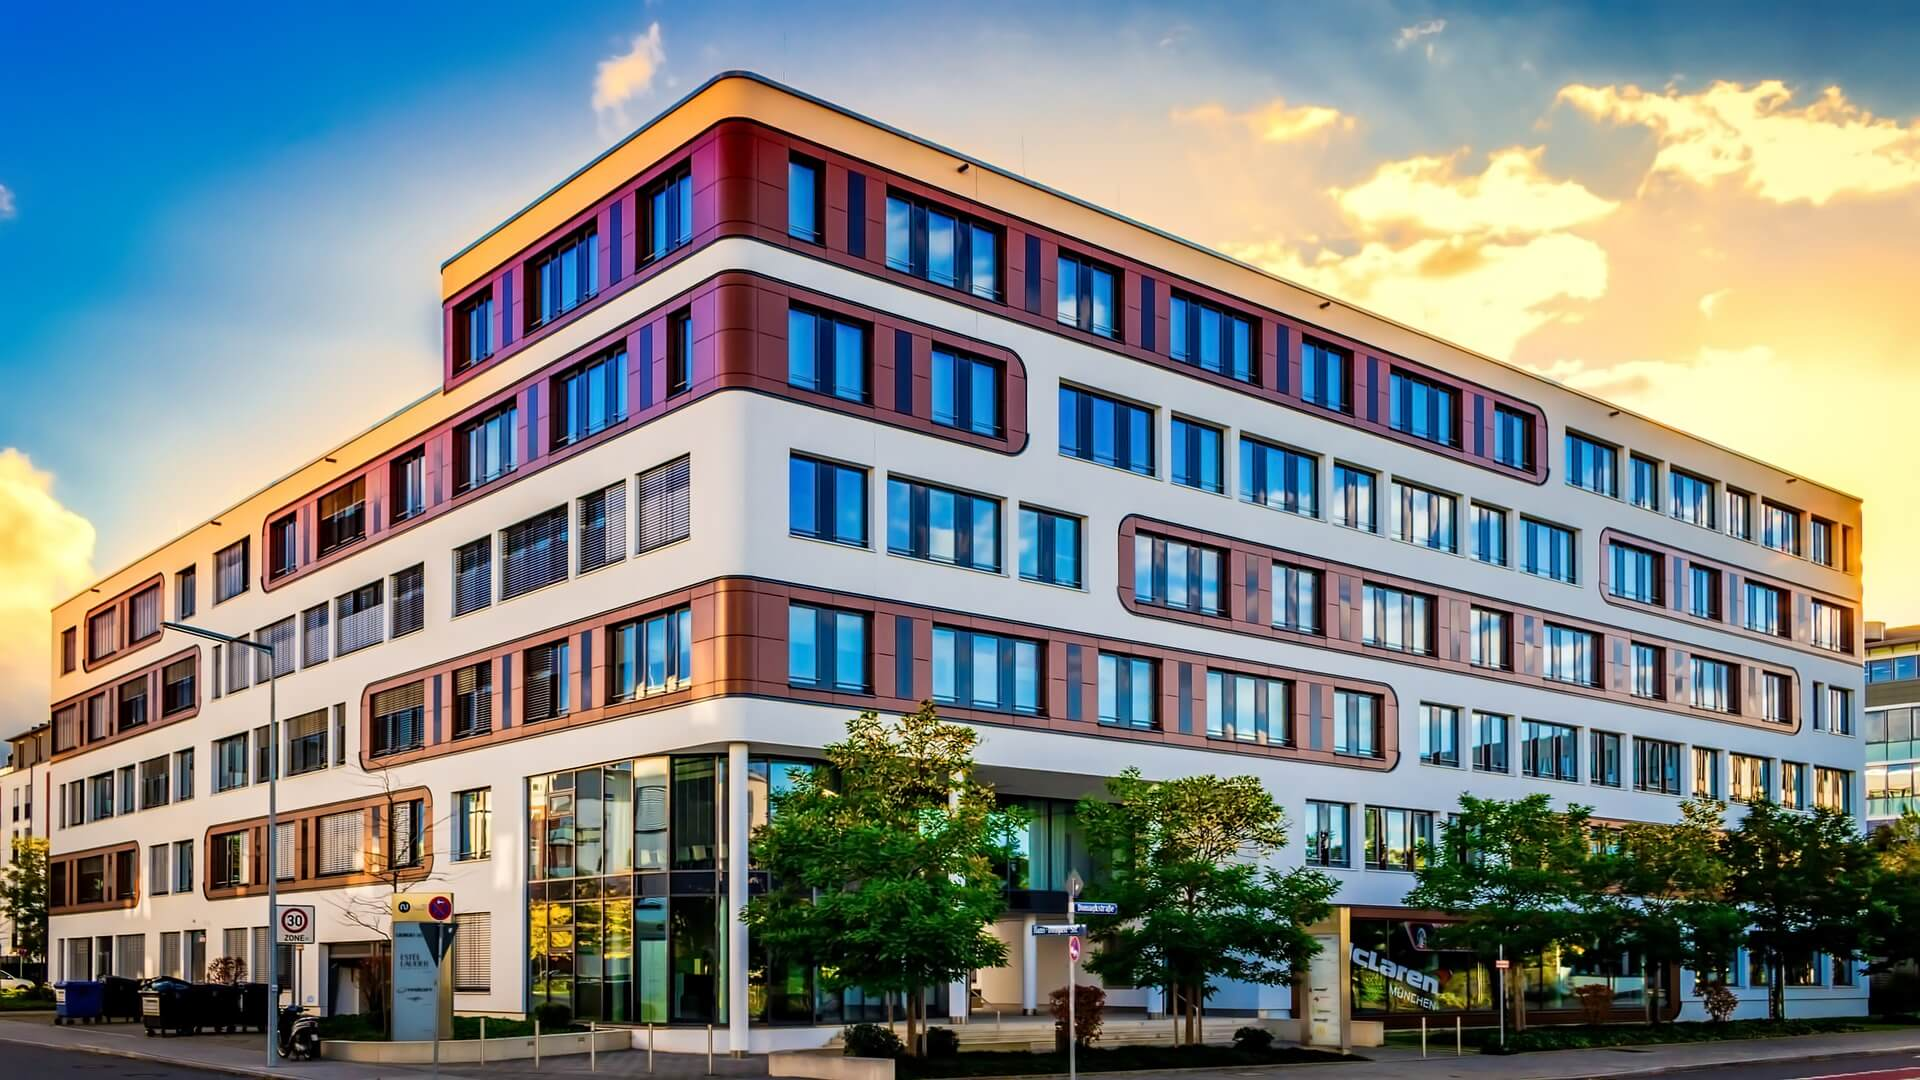 Real Estate Architecture : Athens commercial real estate market converts office